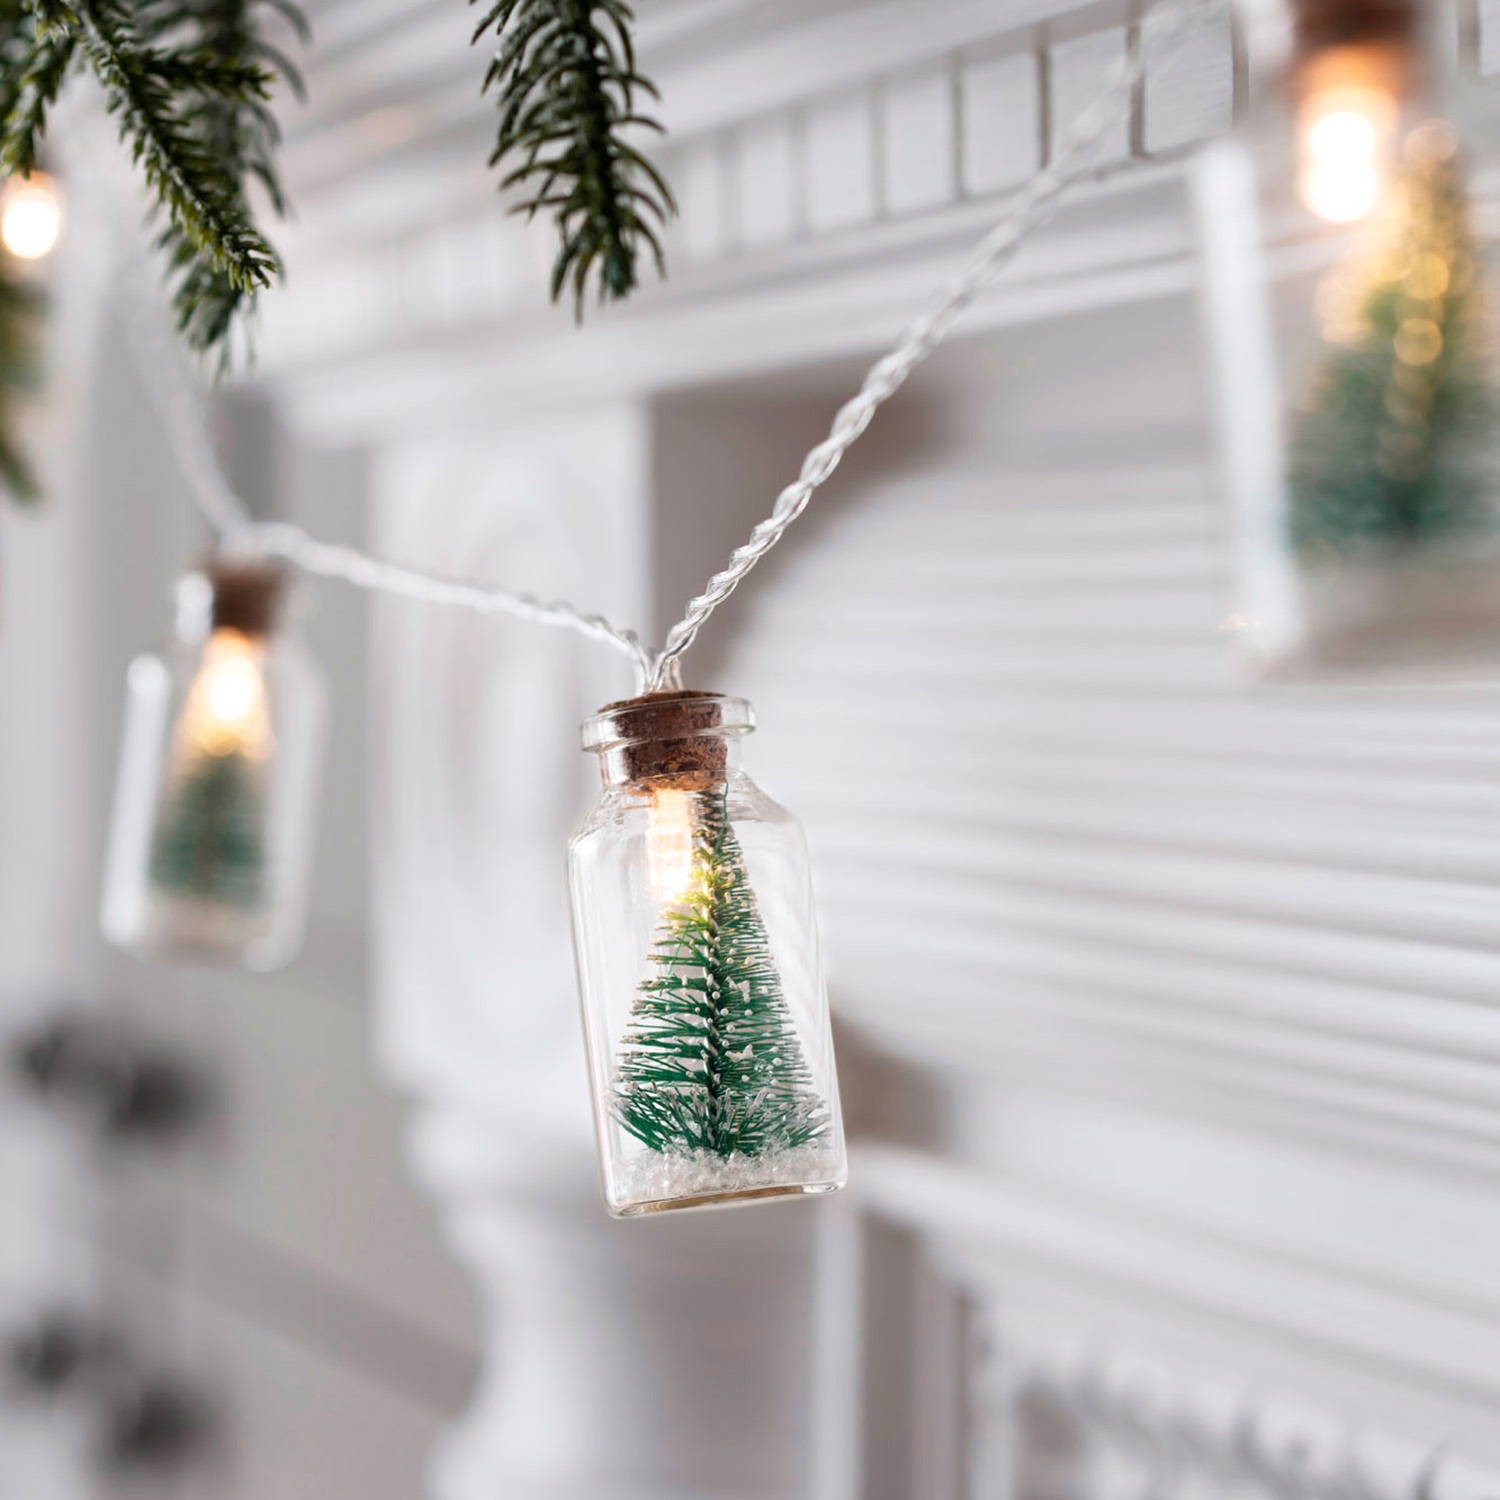 Christmas Tree Bottle Fairy Lights hanging on mantelpiece